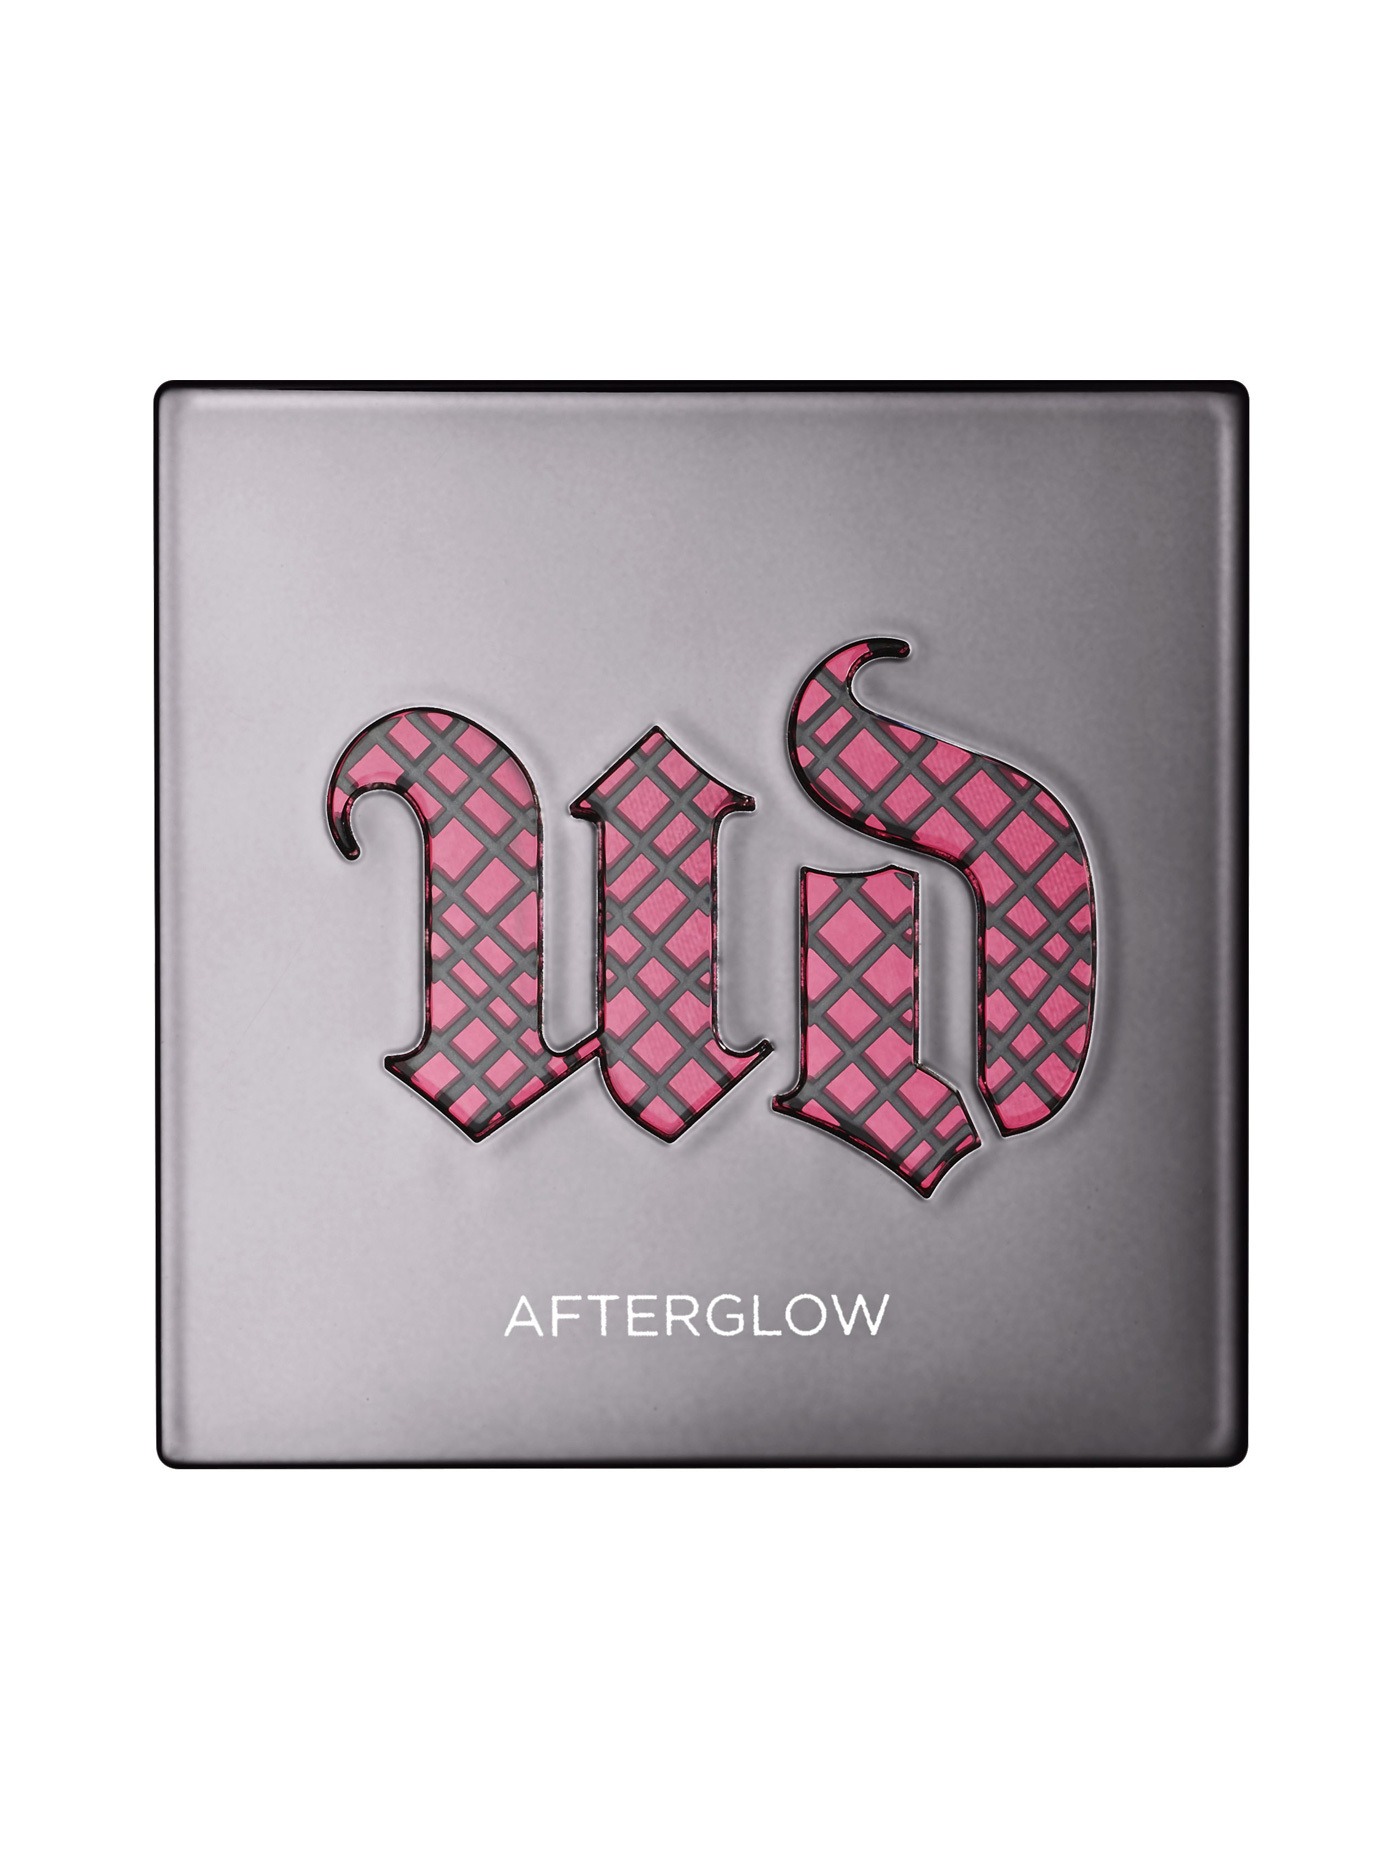 URBAN DECAY Afterglow 8-Hour Powder Blush #Score 送料無料